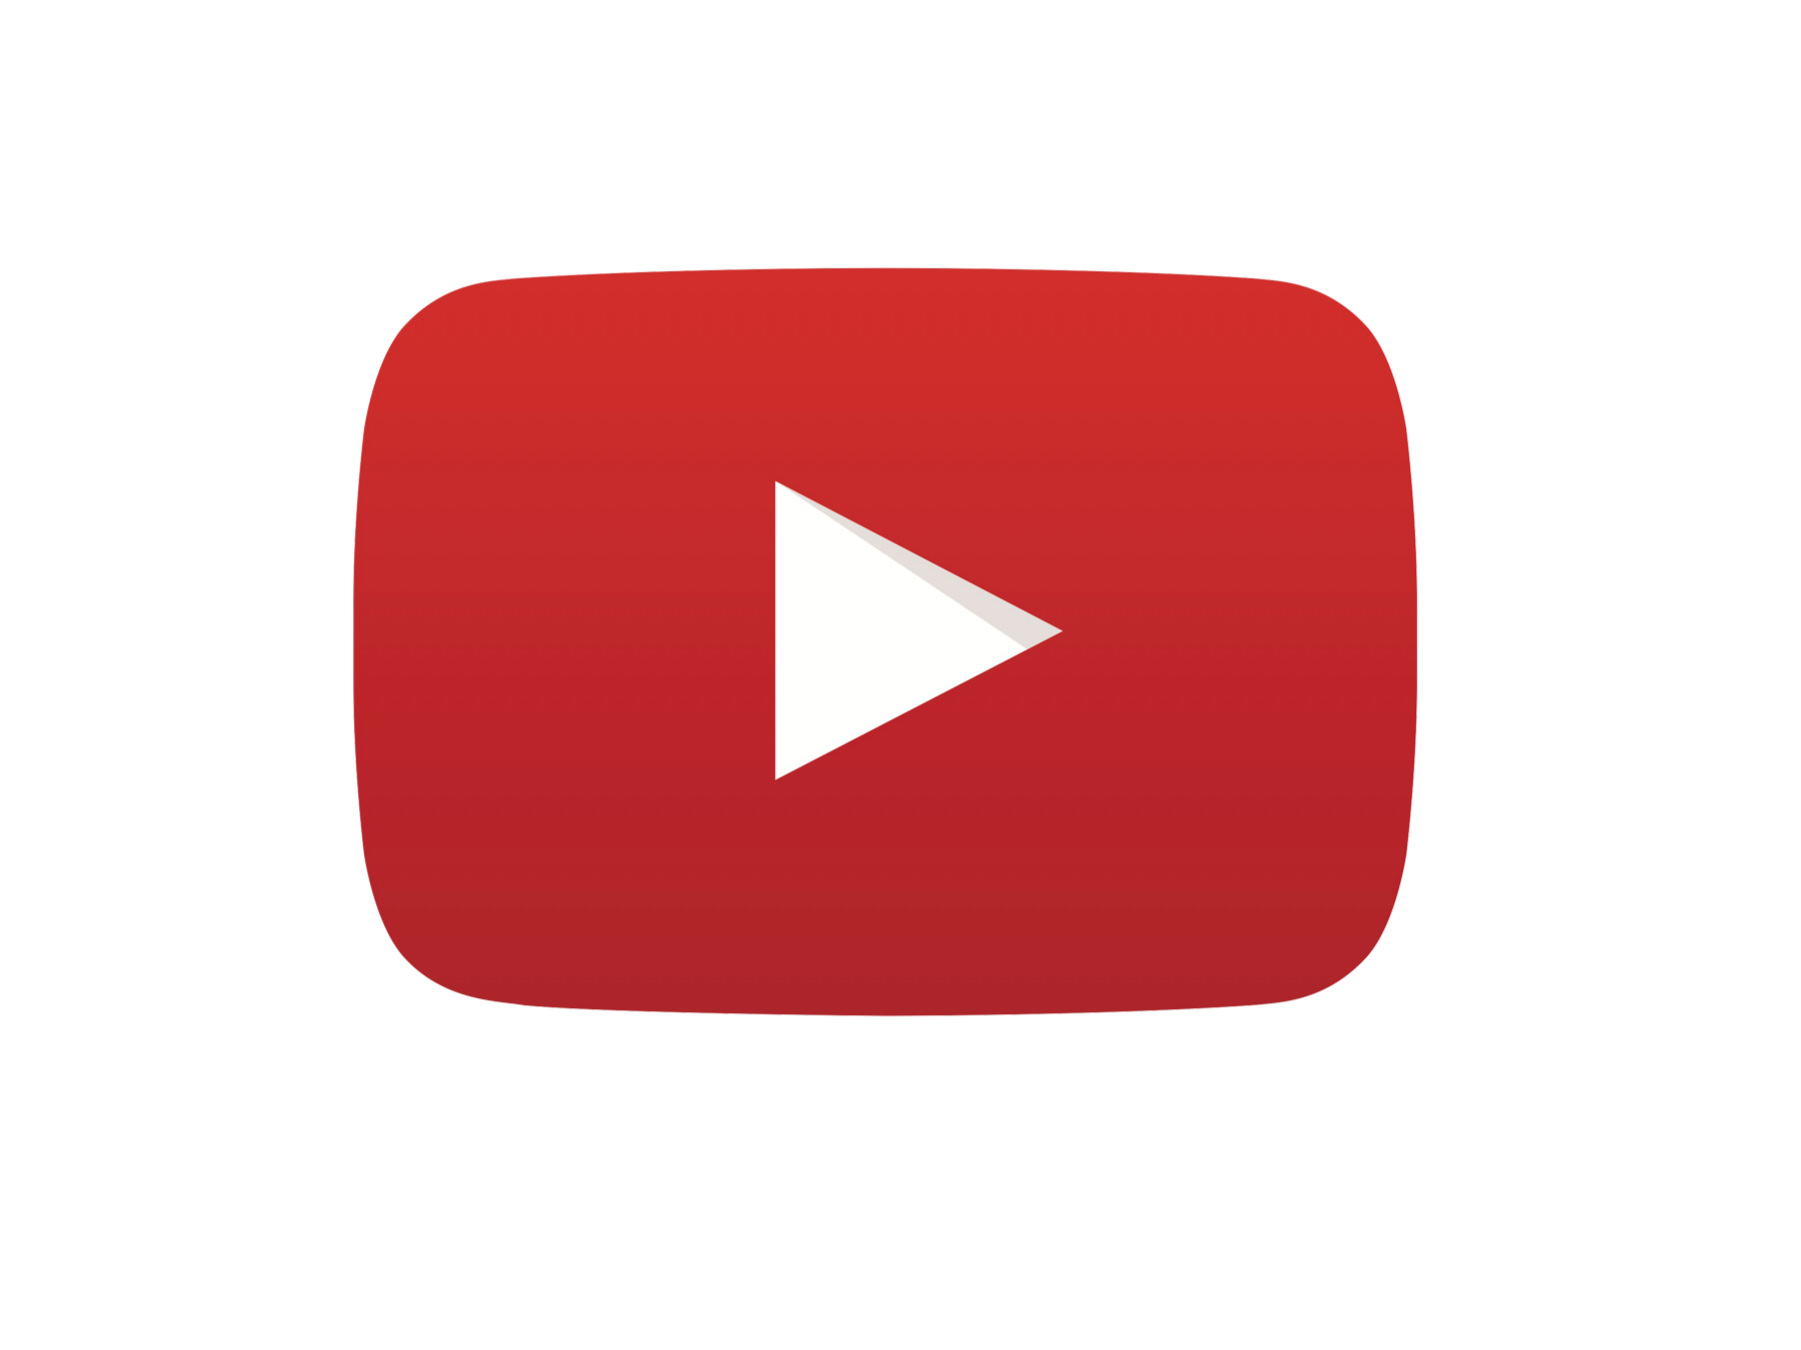 YouTube-logo-play-icon.jpg